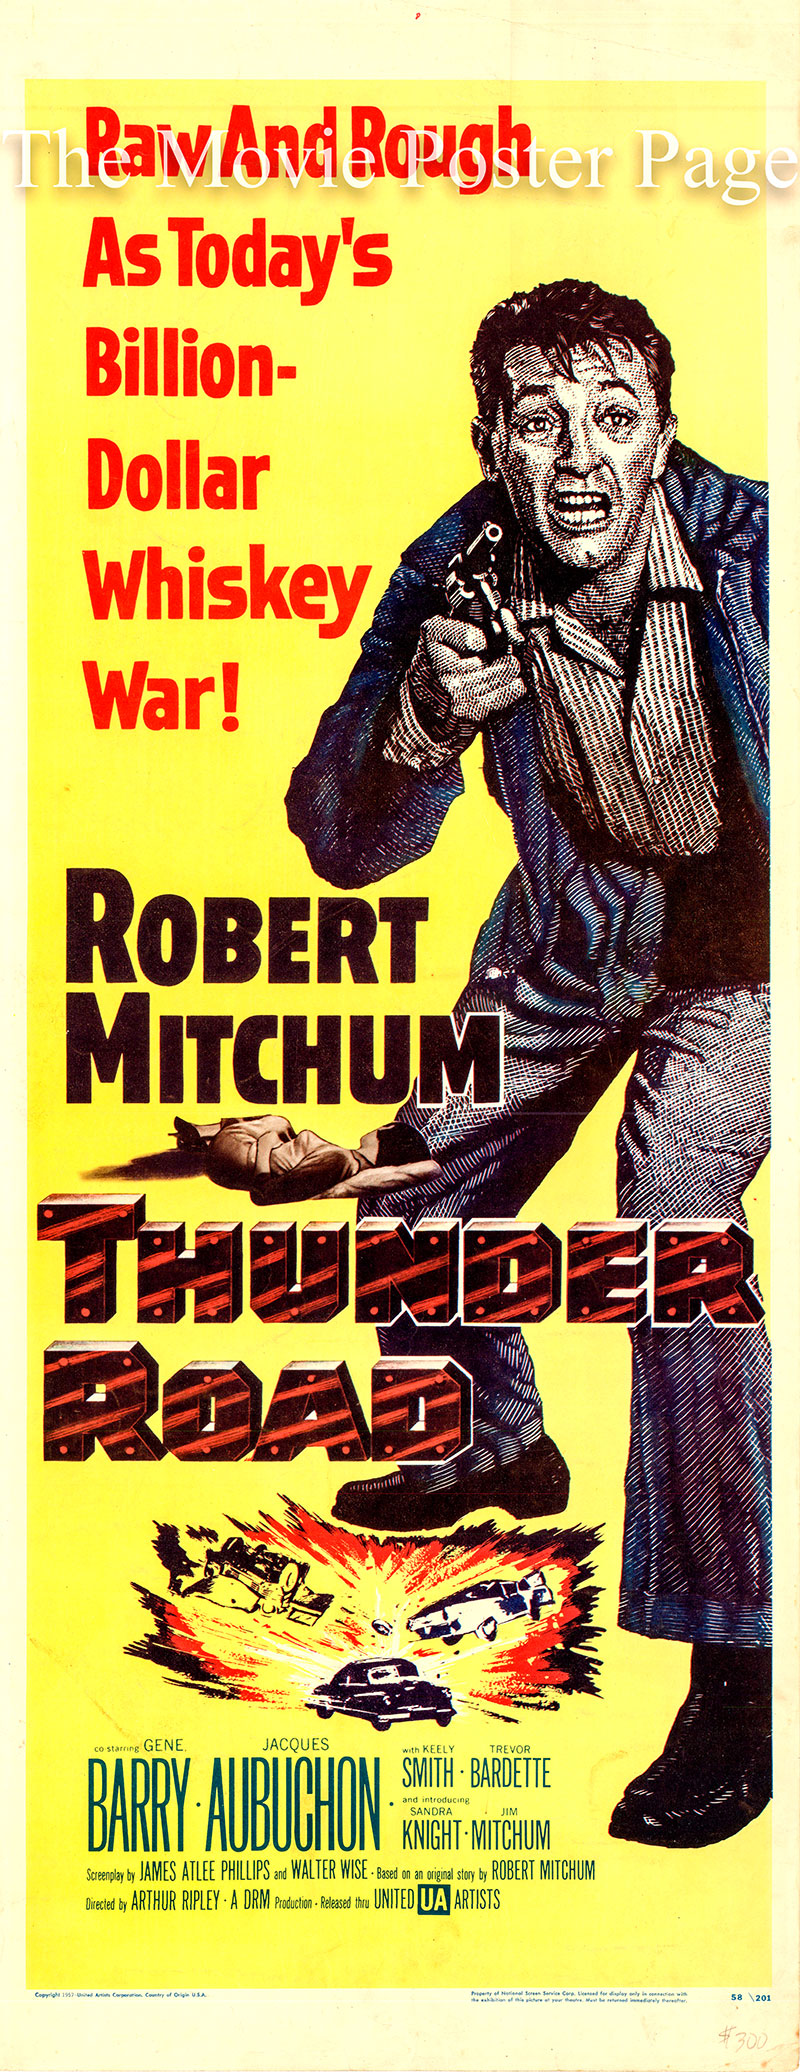 Pictured is a US insert promotional poster for the 1958 Arthur Riplee film Thunder Road starring Robert Mitchum.